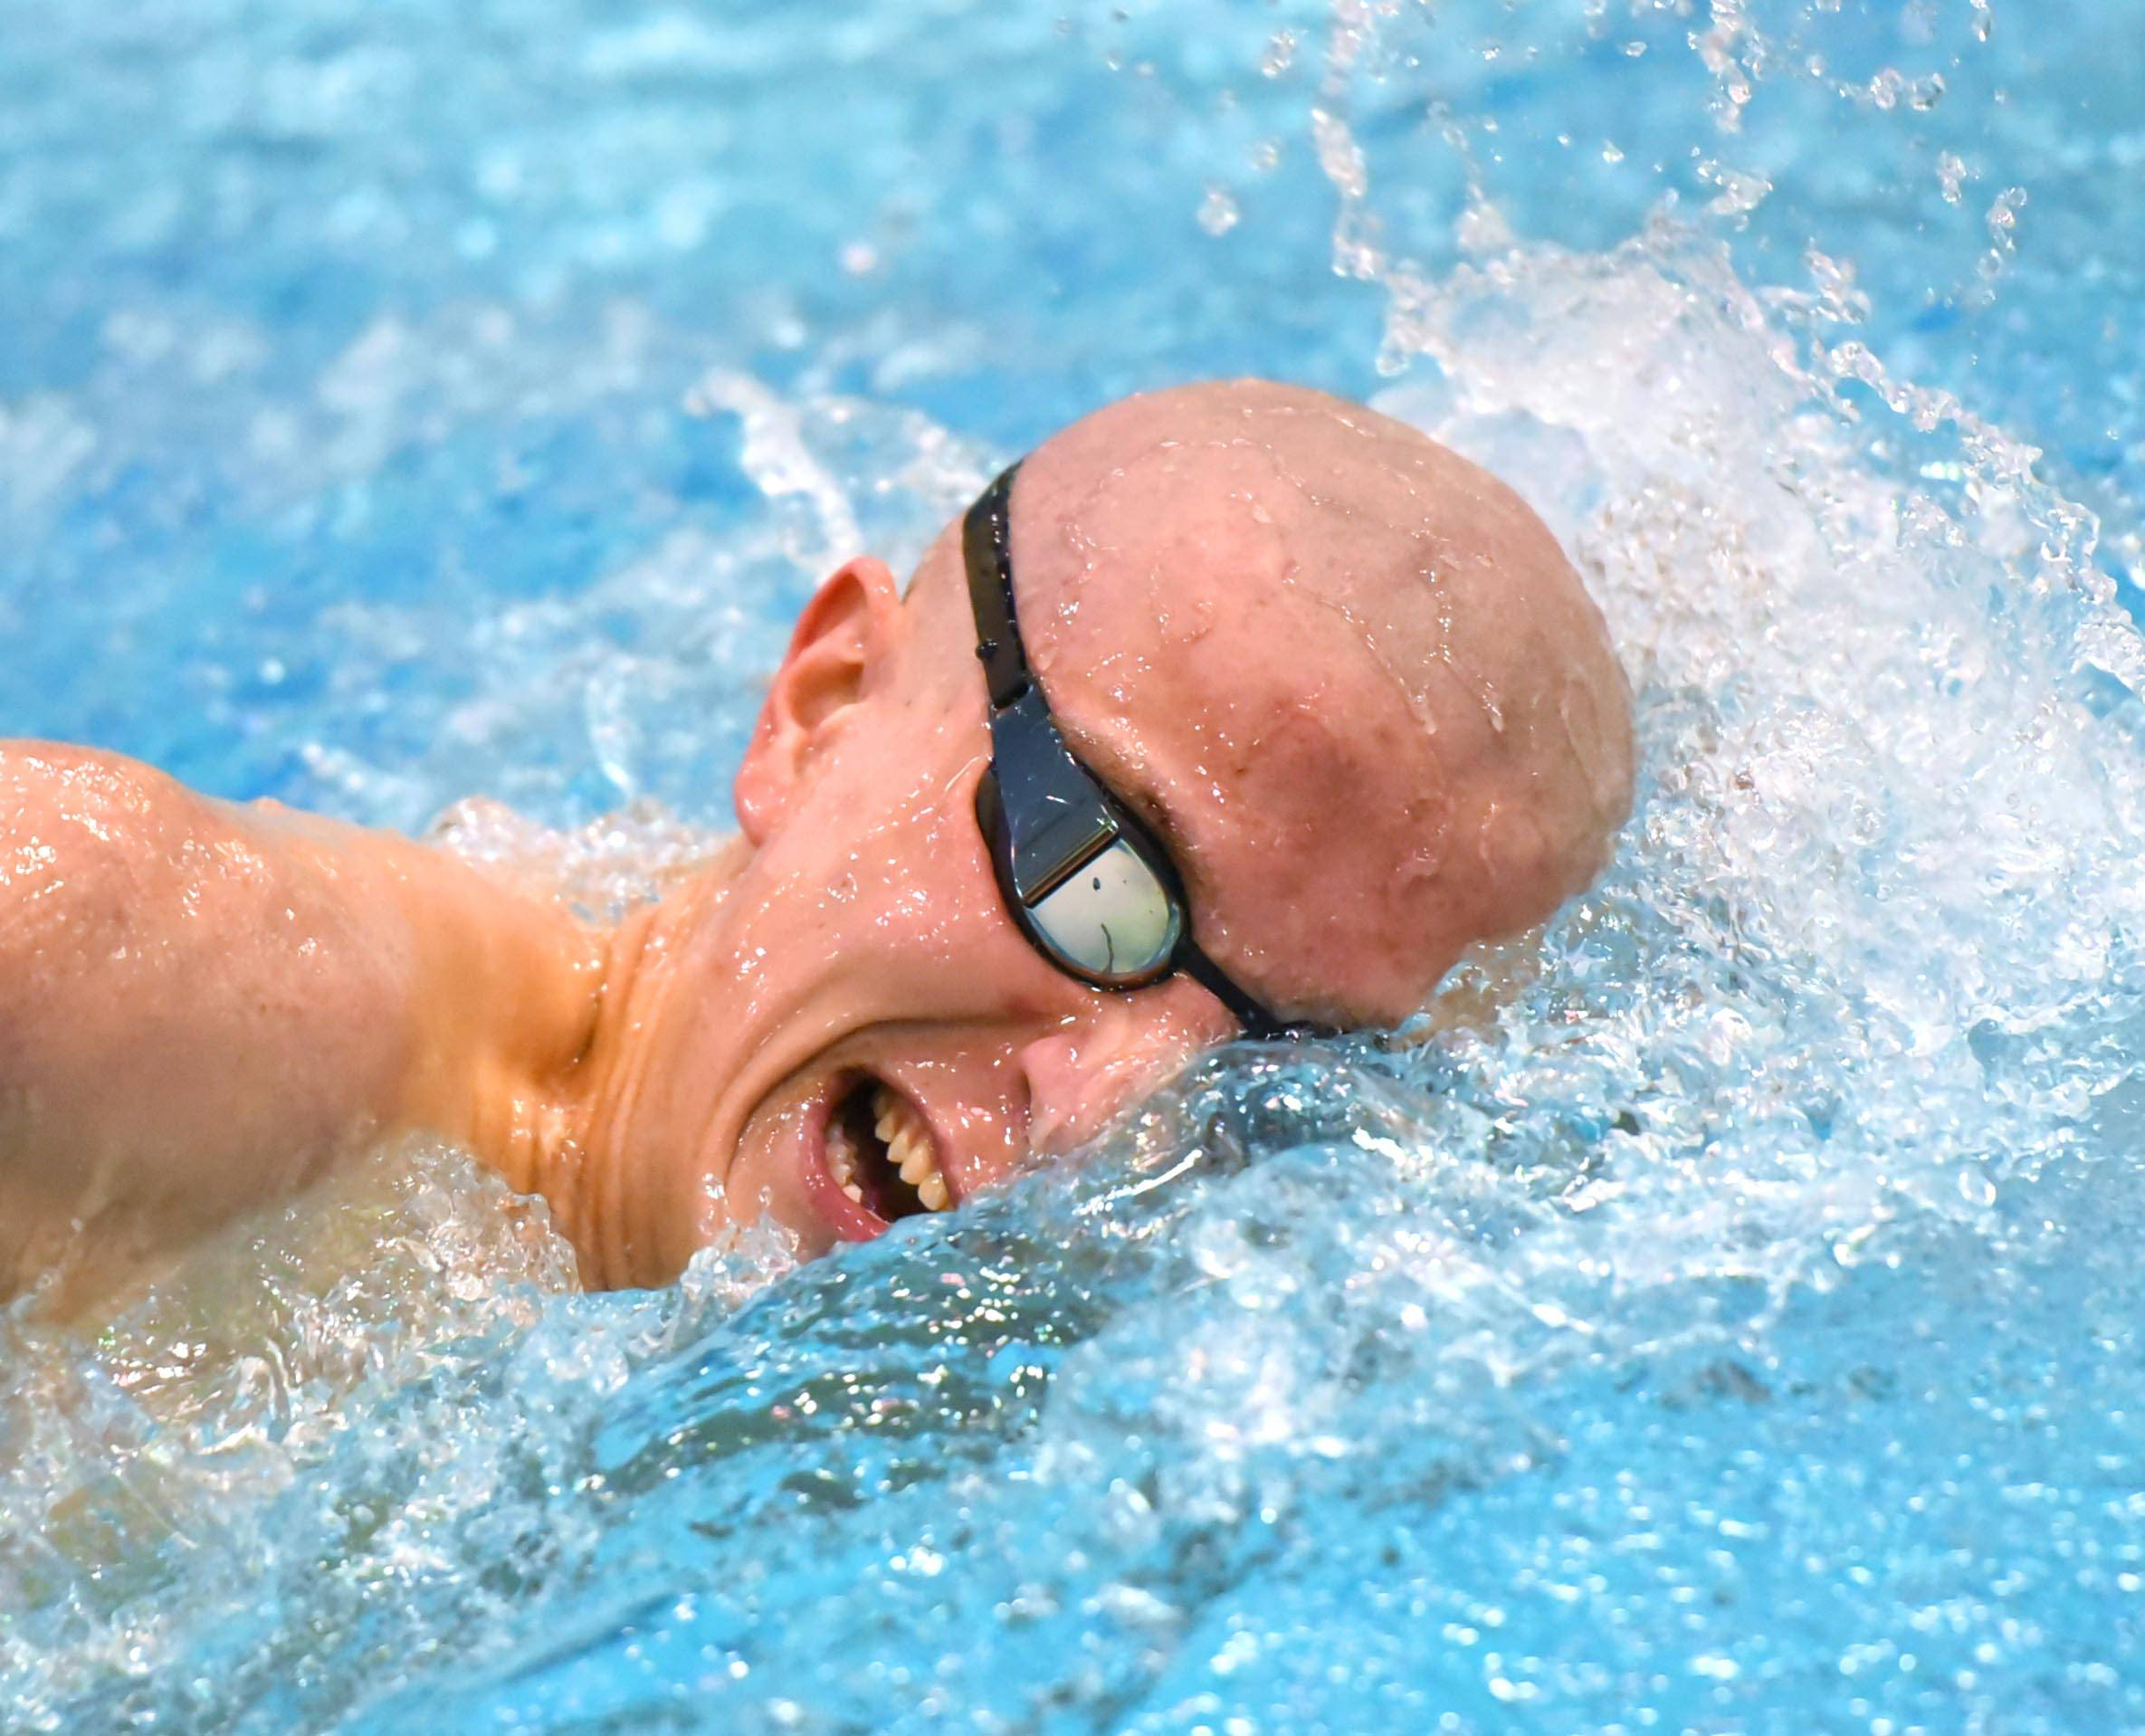 St. Charles East's Austin Cabel competes in the 500-yard freestyle at the boys swimming state meet last season. Cabel returns for the Saints this season.